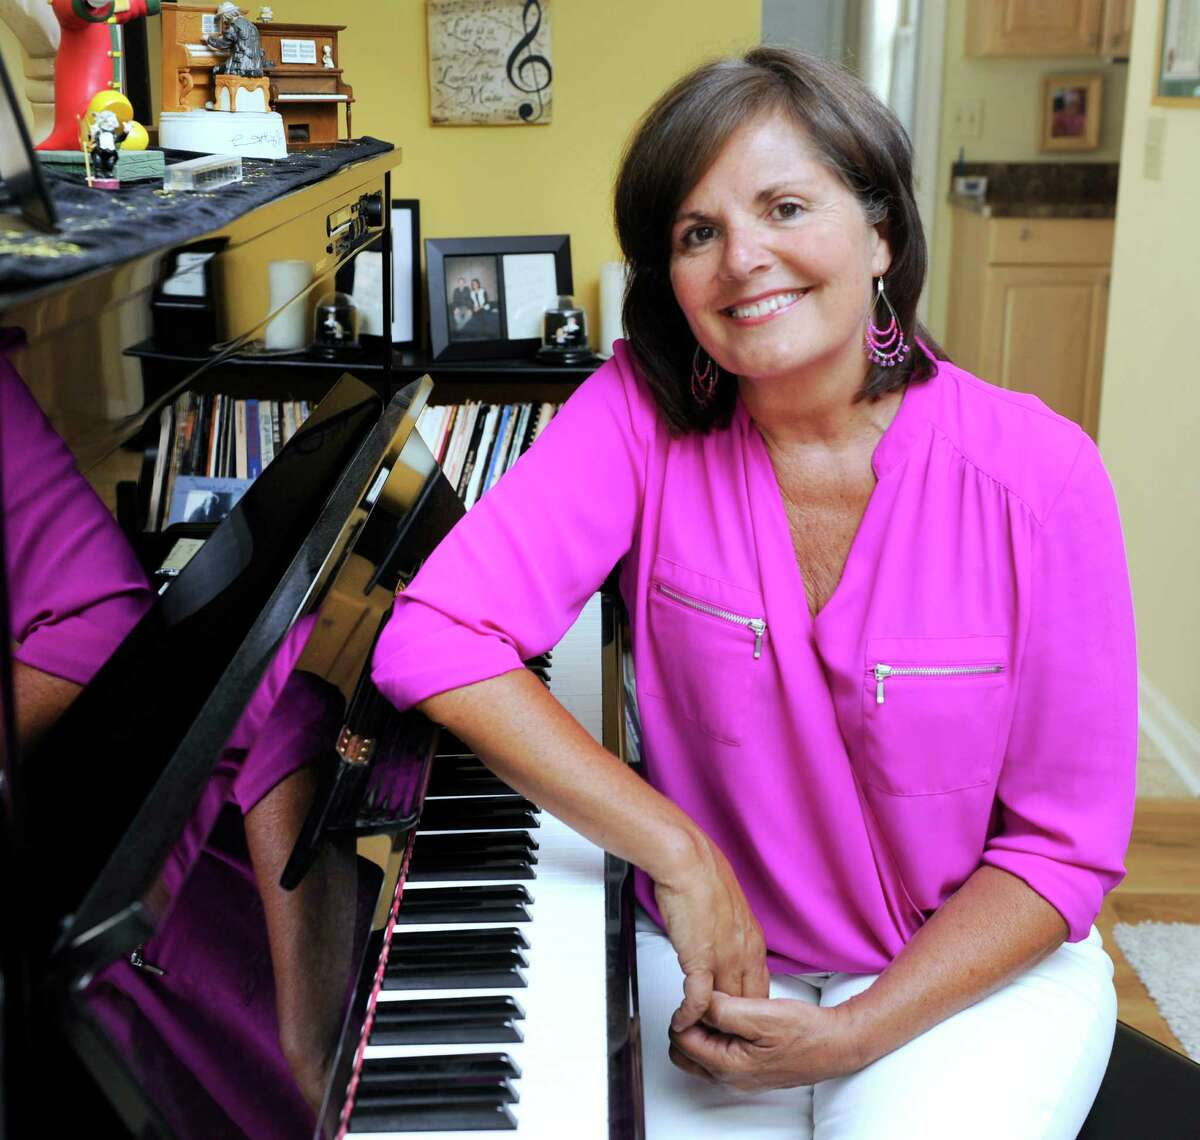 Linda Wrenn, of New Milford, is starting a music group for children, Hearts in Harmony Jr.